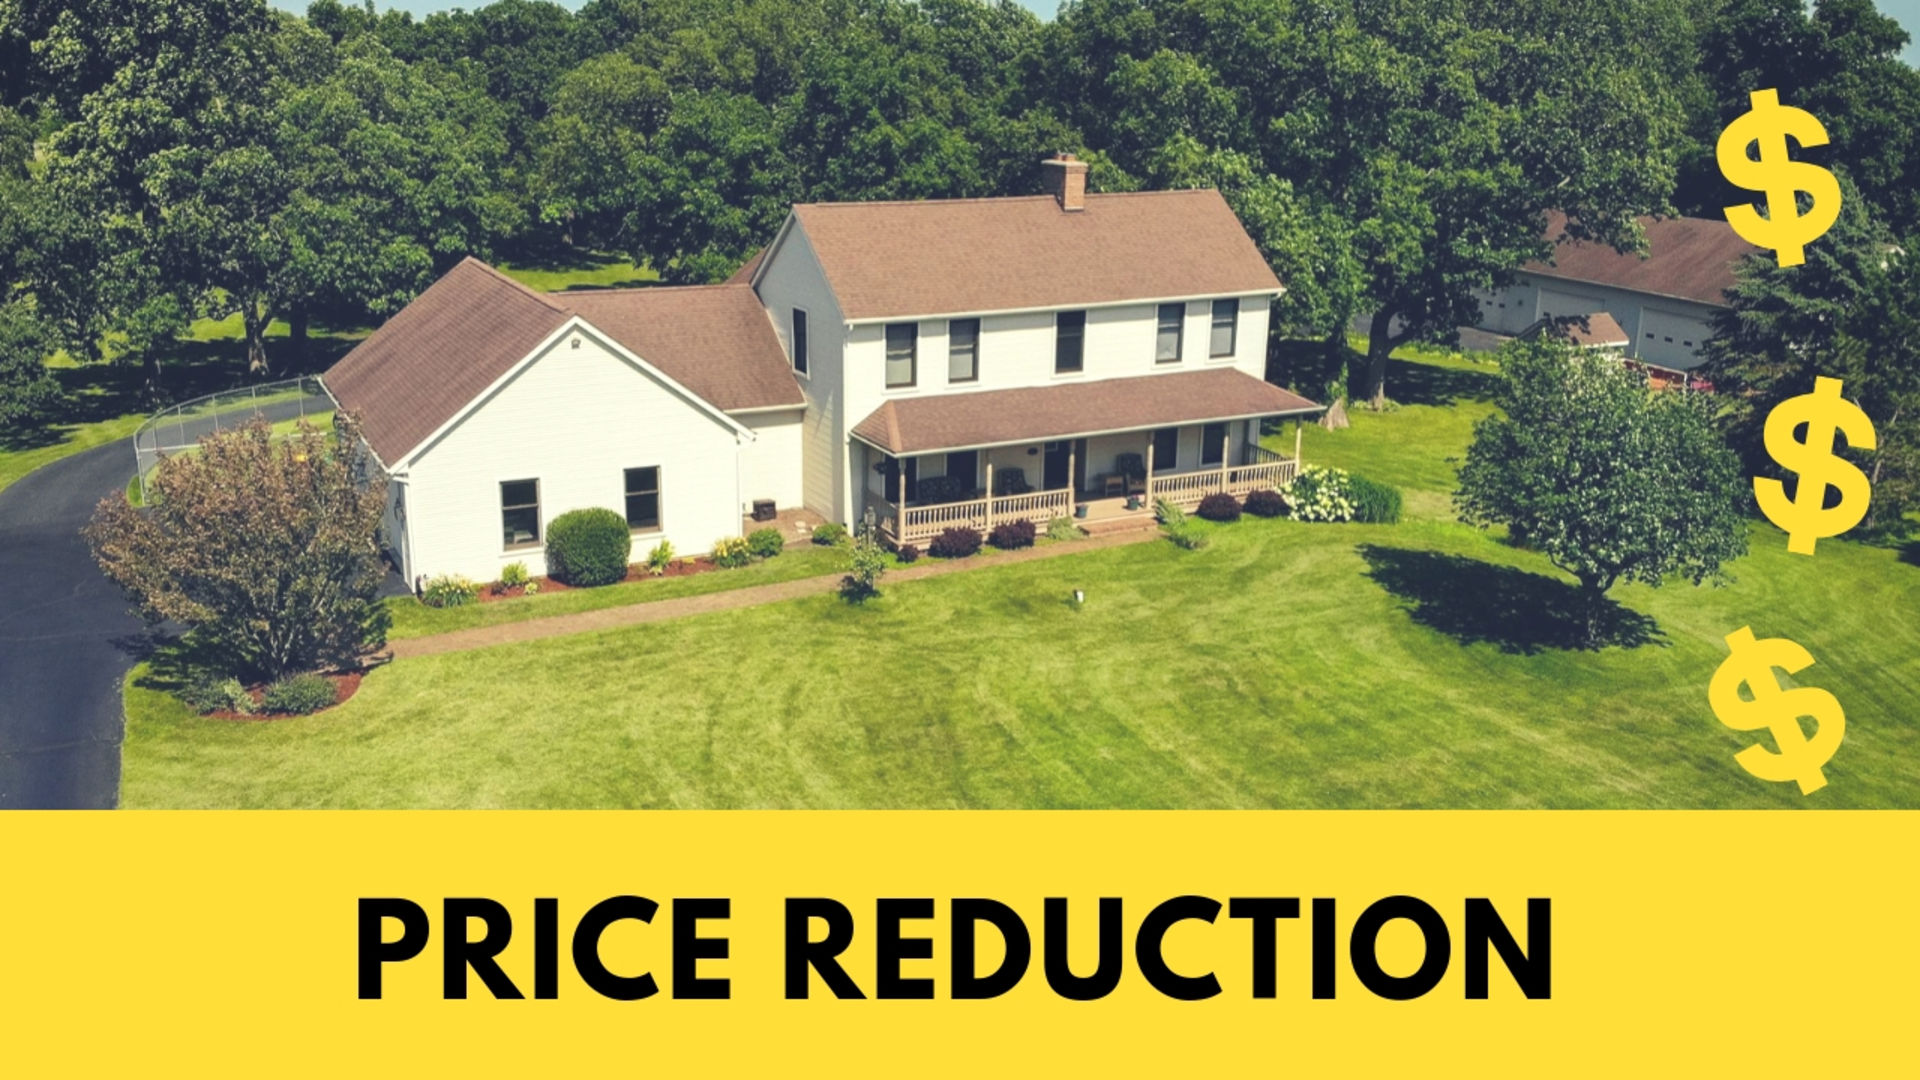 Price Reduction: September 18th